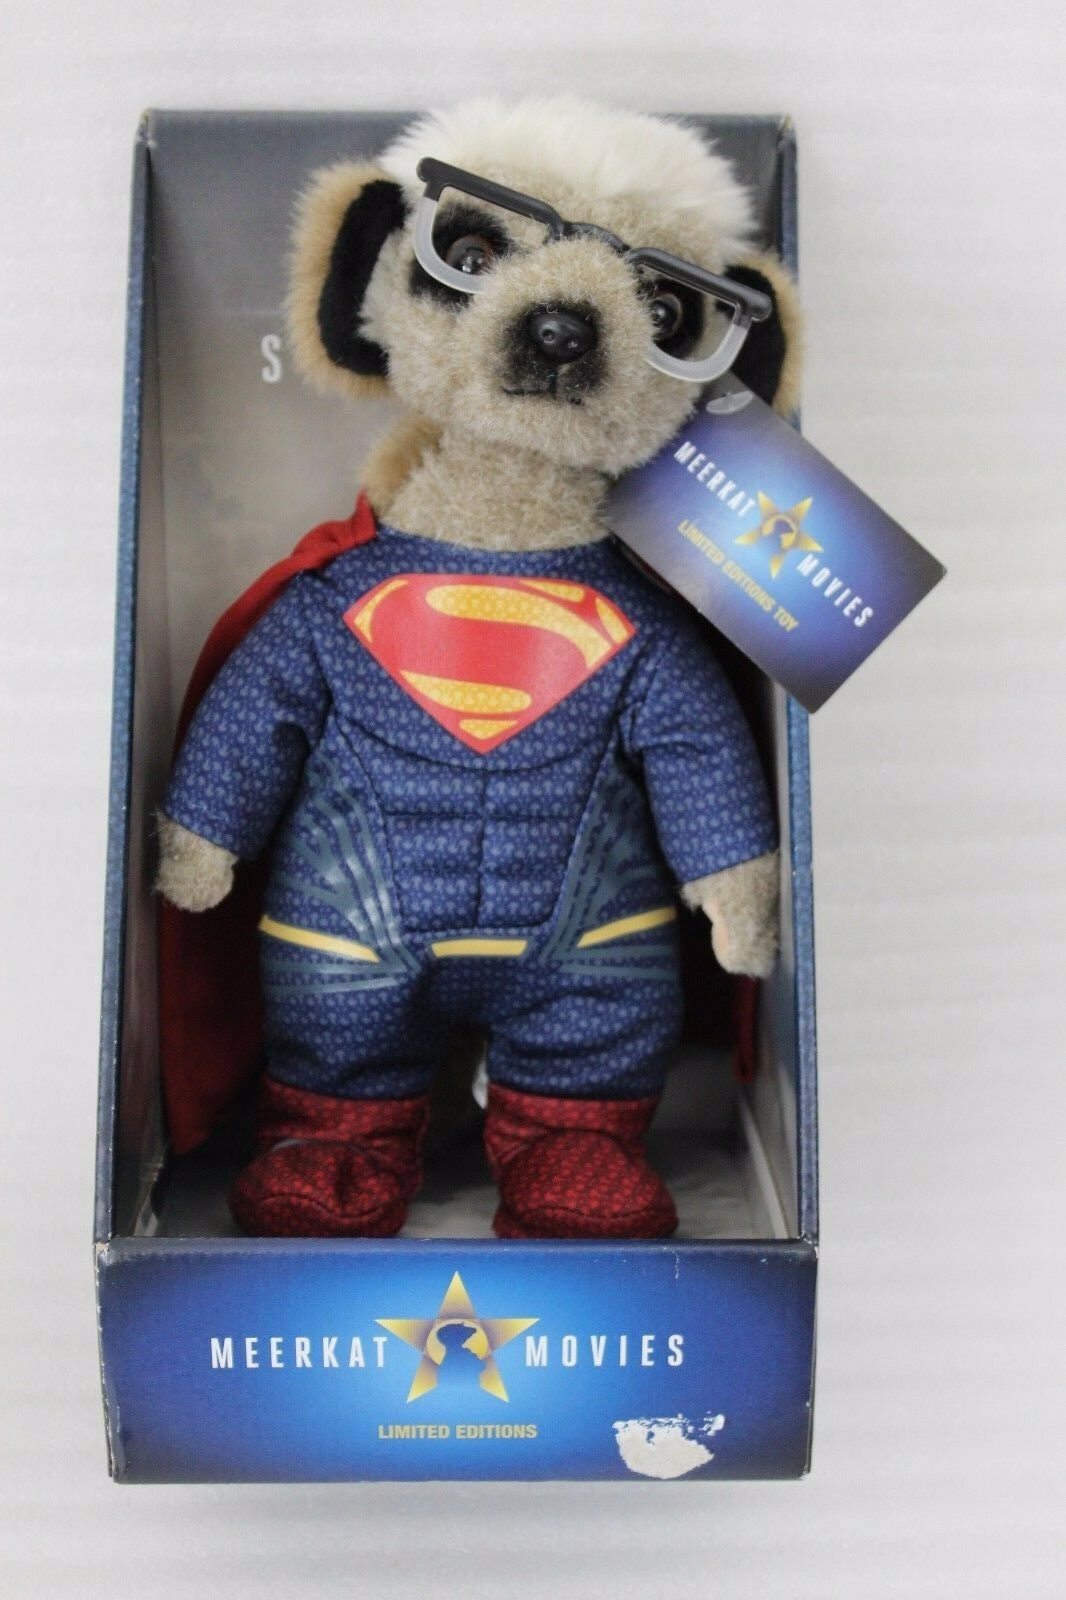 NUOVO Sergei as Superman BAMBOLA Meerkat Movies Clark Kent OFFICIAL